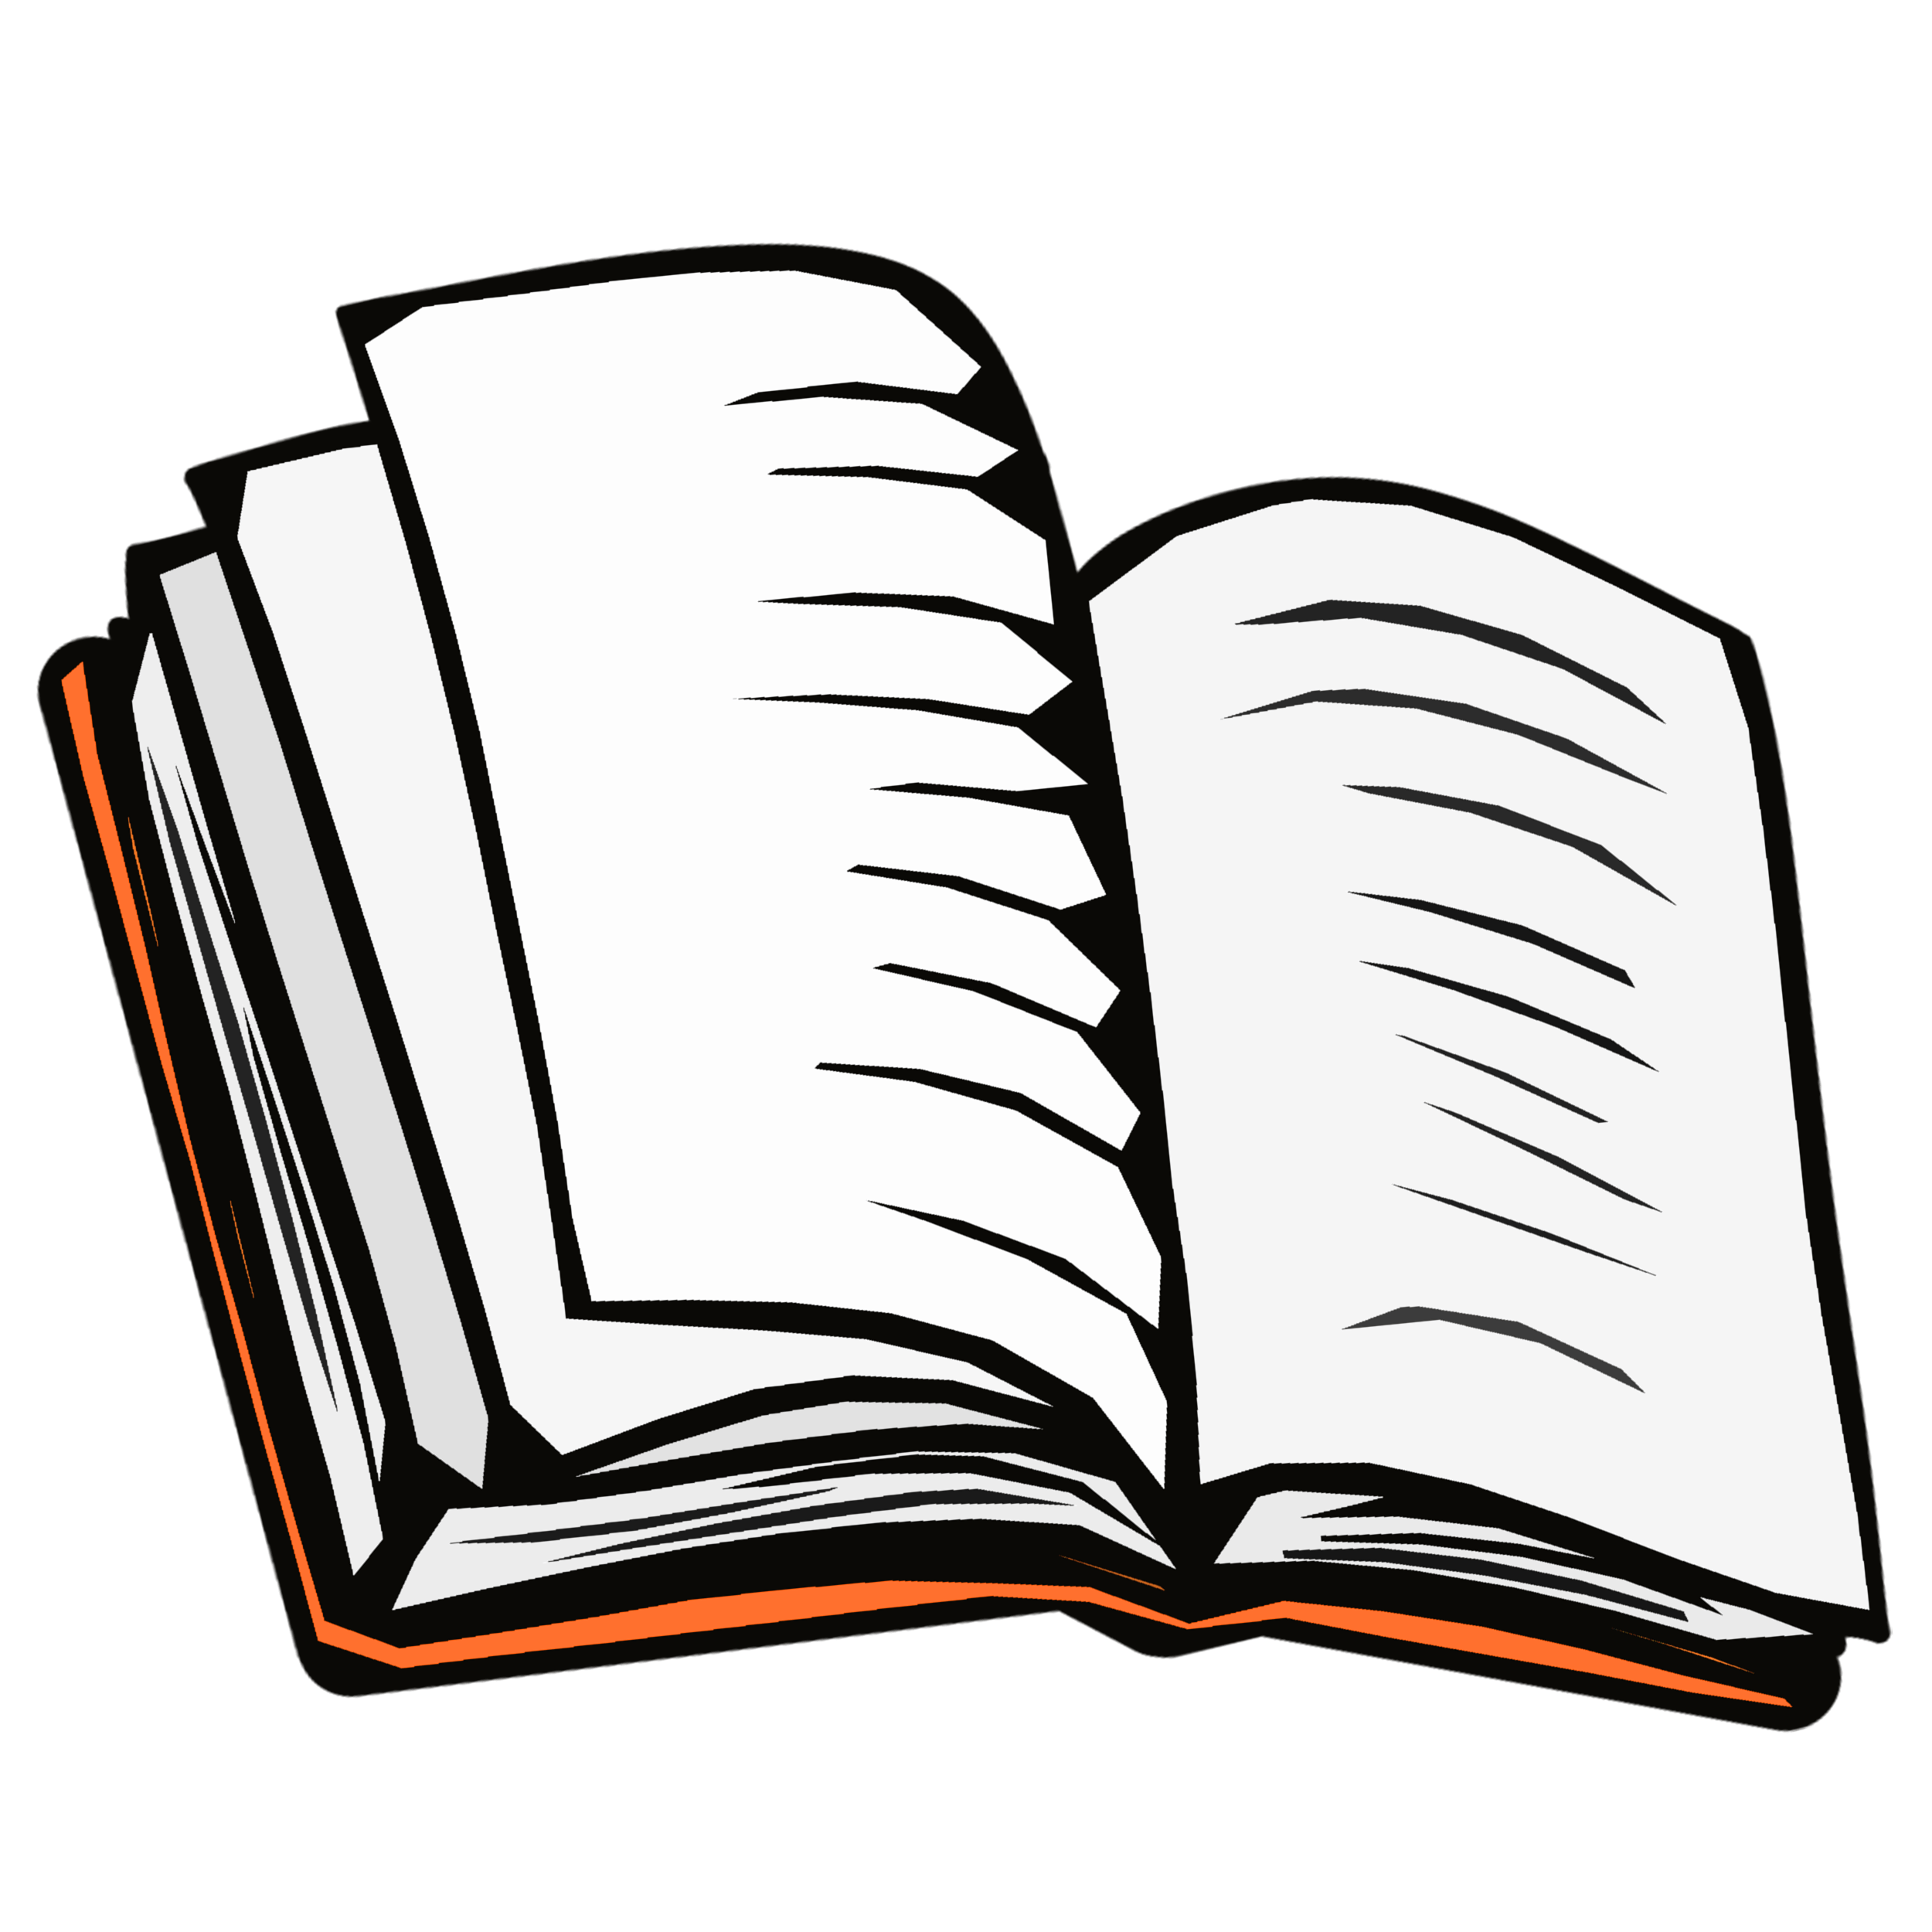 Free Book Clipart Transparent Book Images And Book Files